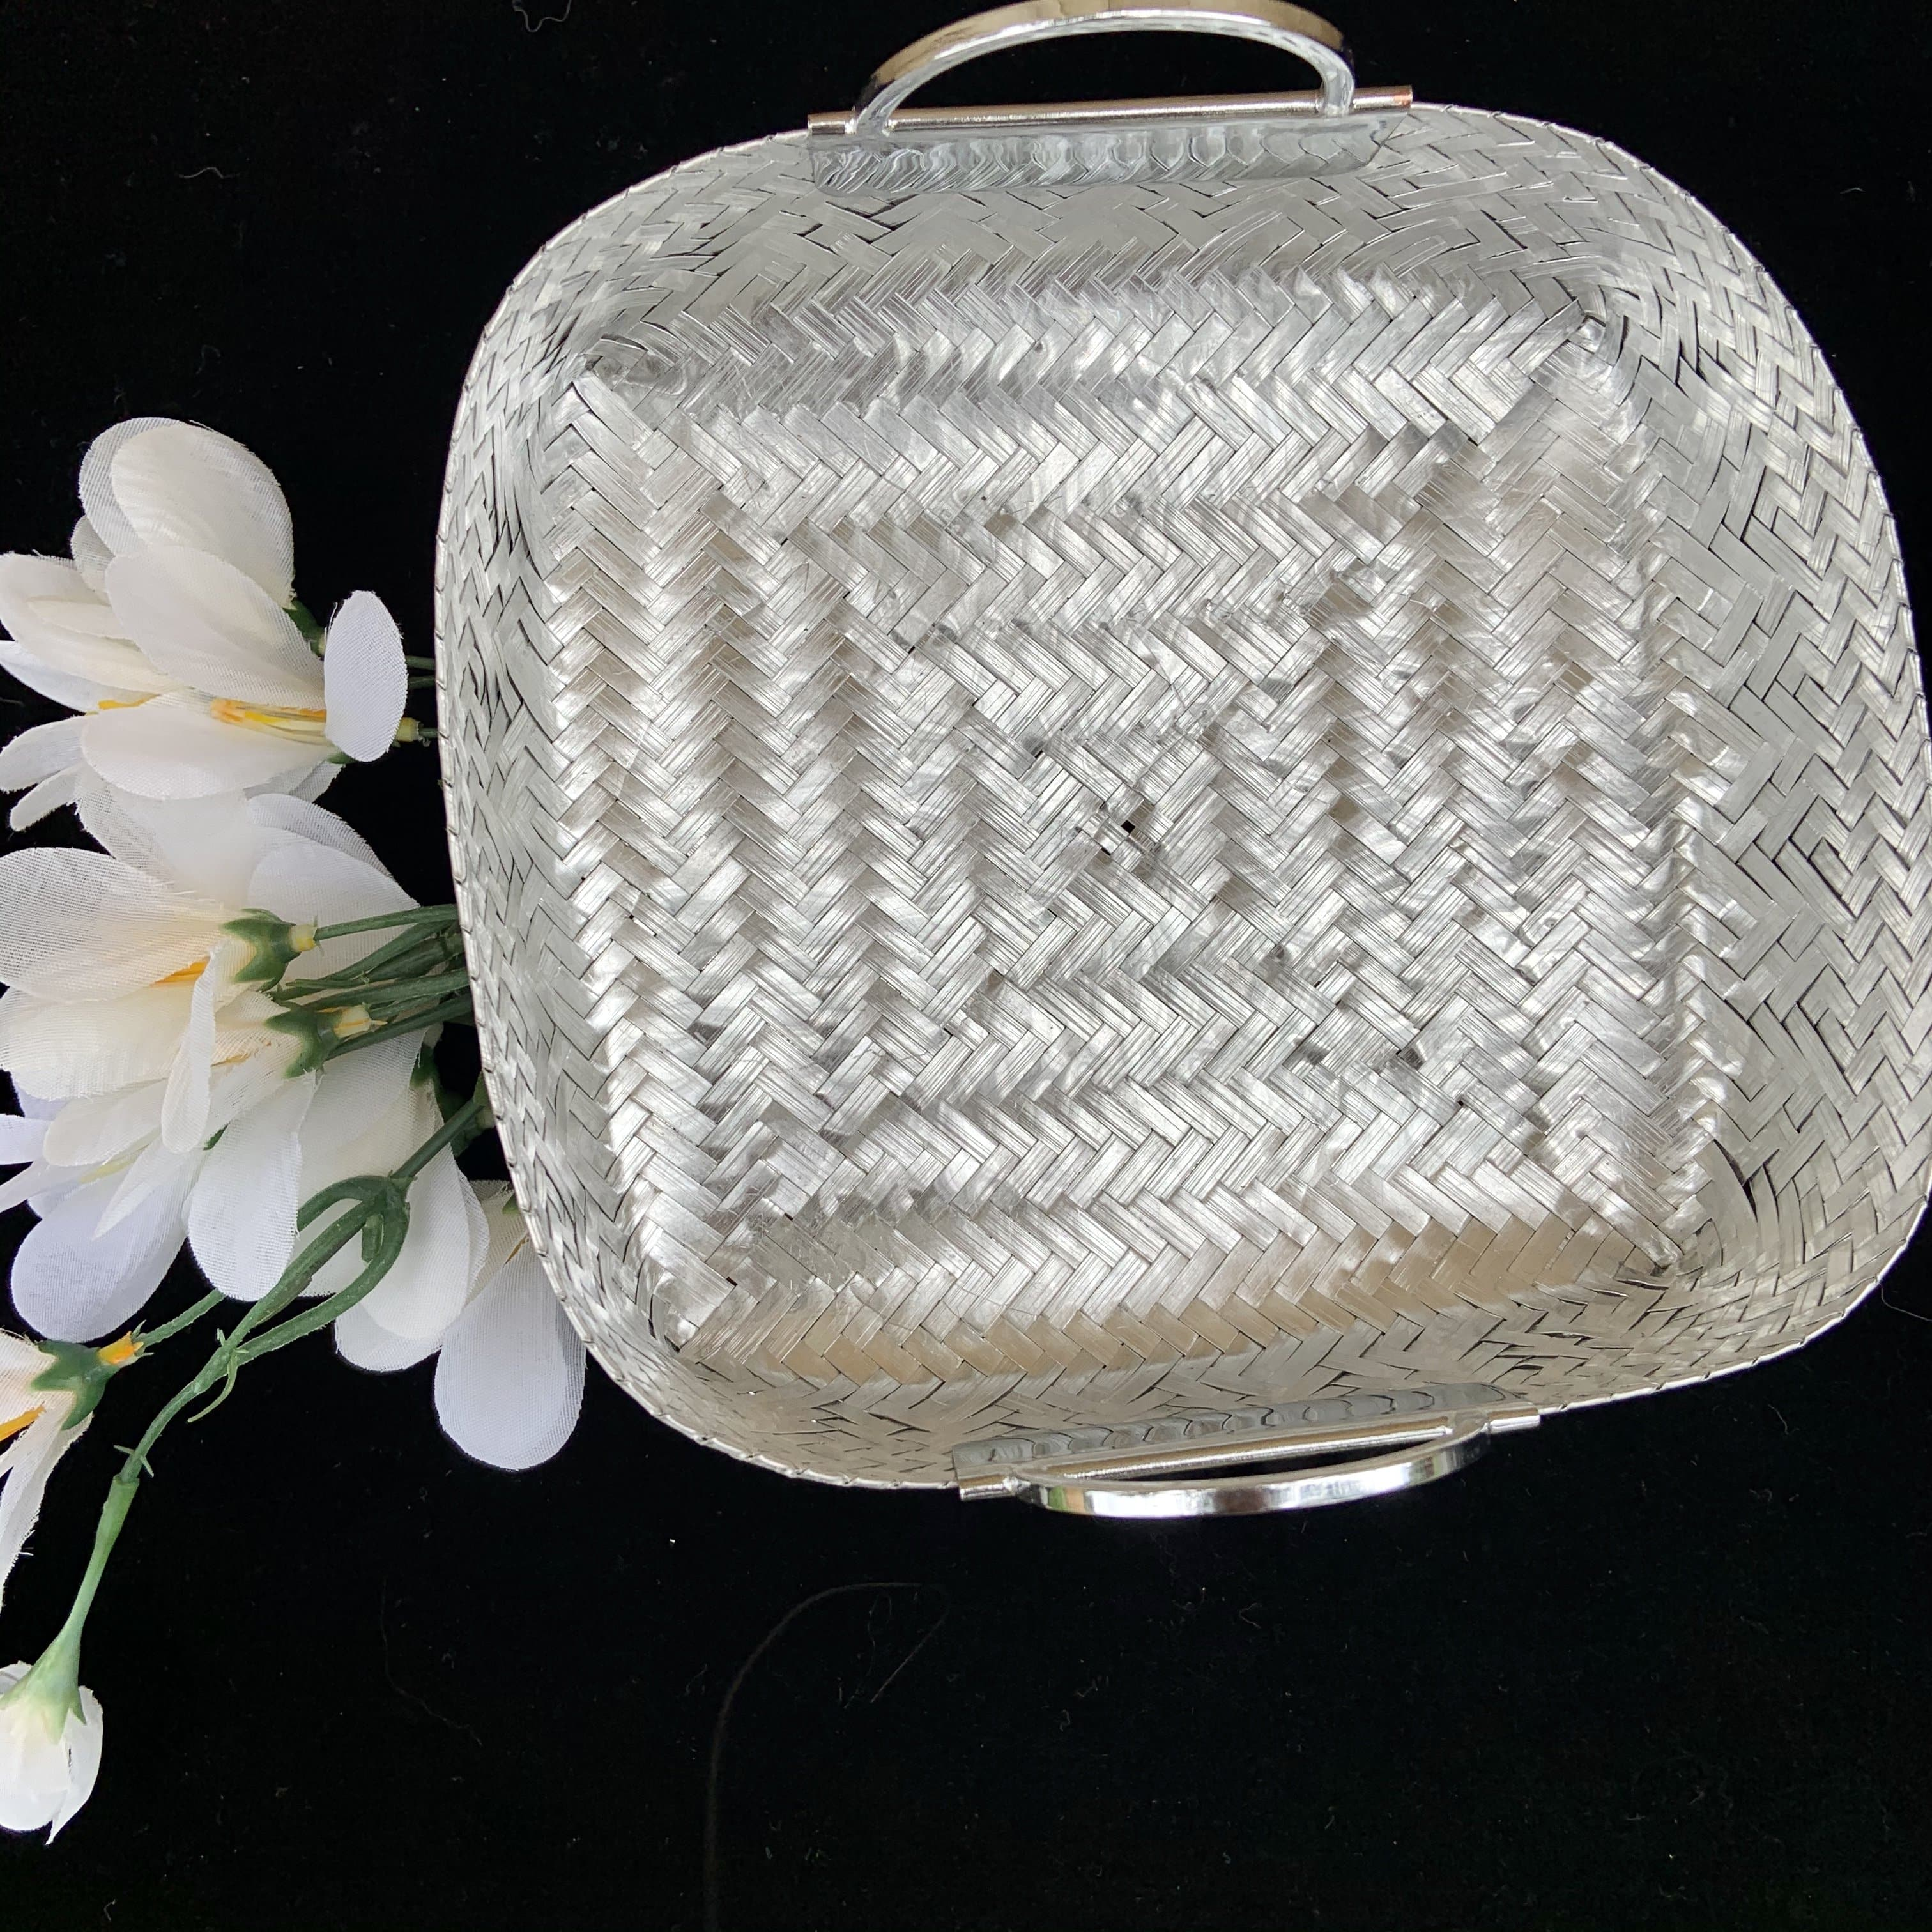 Woven Aluminum Basket with Handles